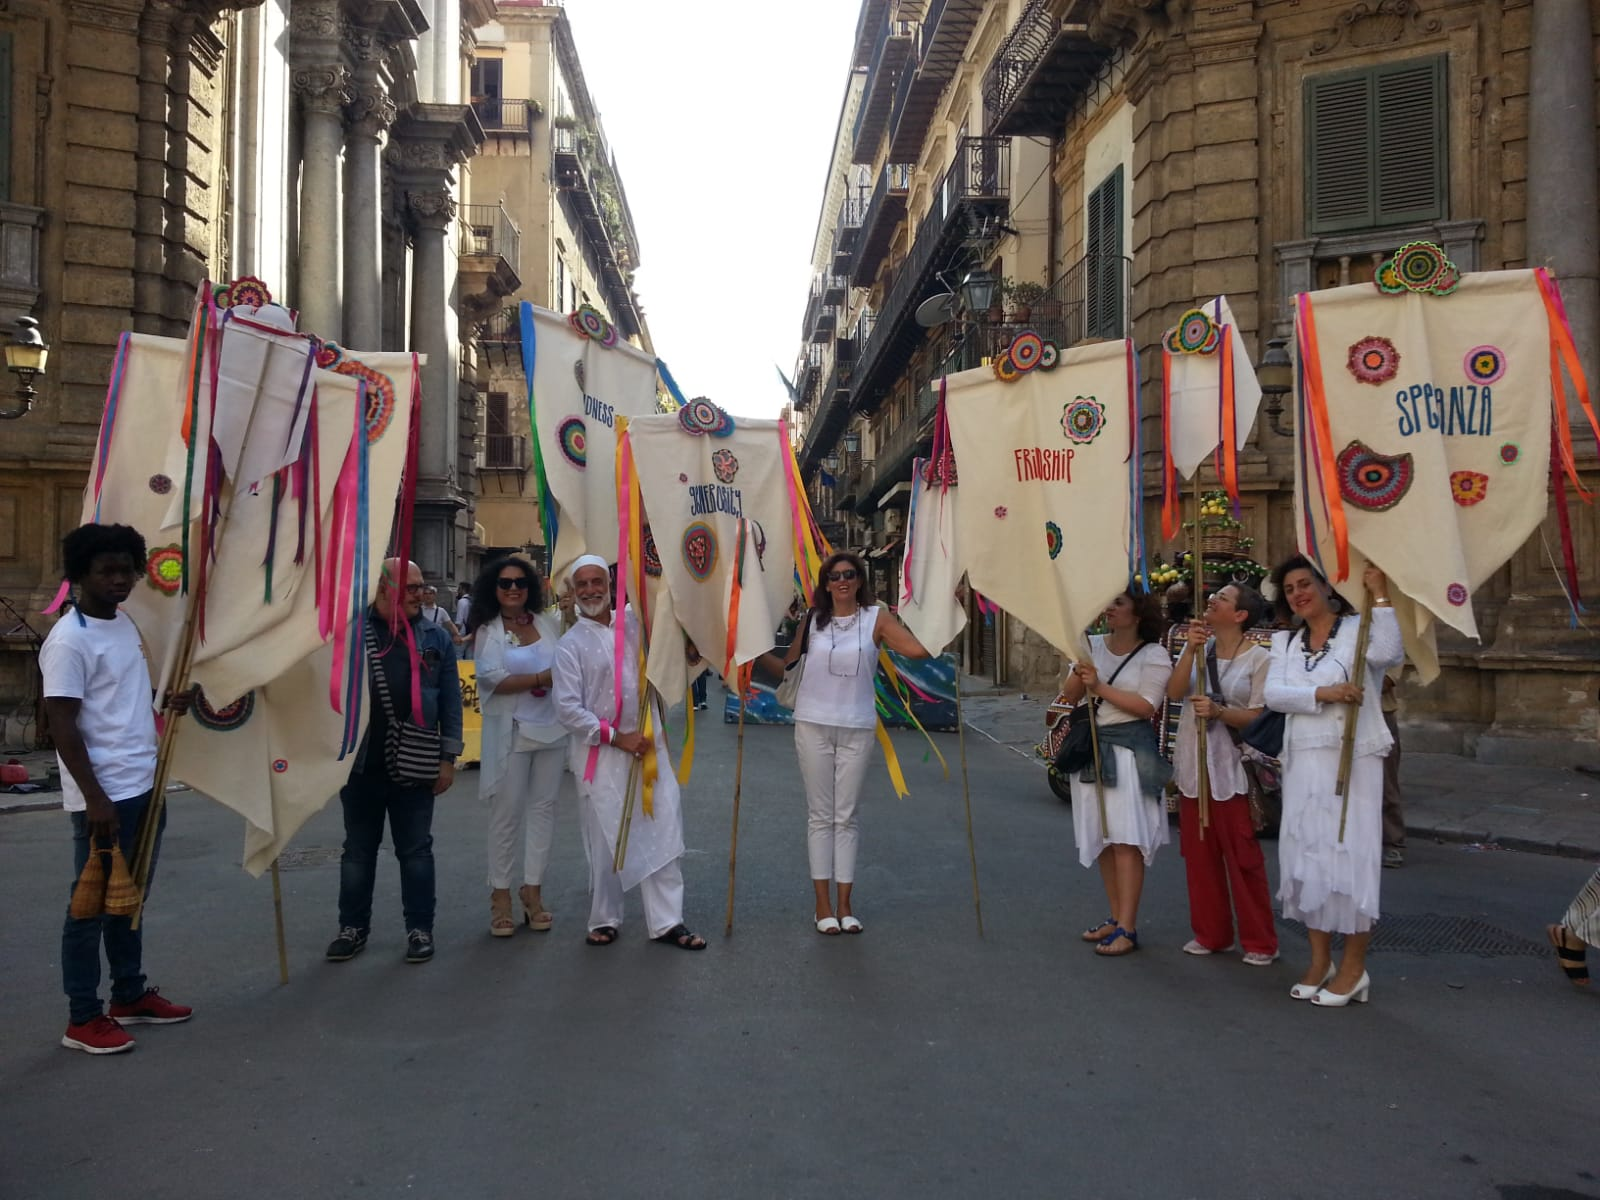 - Kate Daudy's 'Am I My Brother's Keeper?' travelled eastwards to Italy, where banners were paraded through the streets of Palermo.